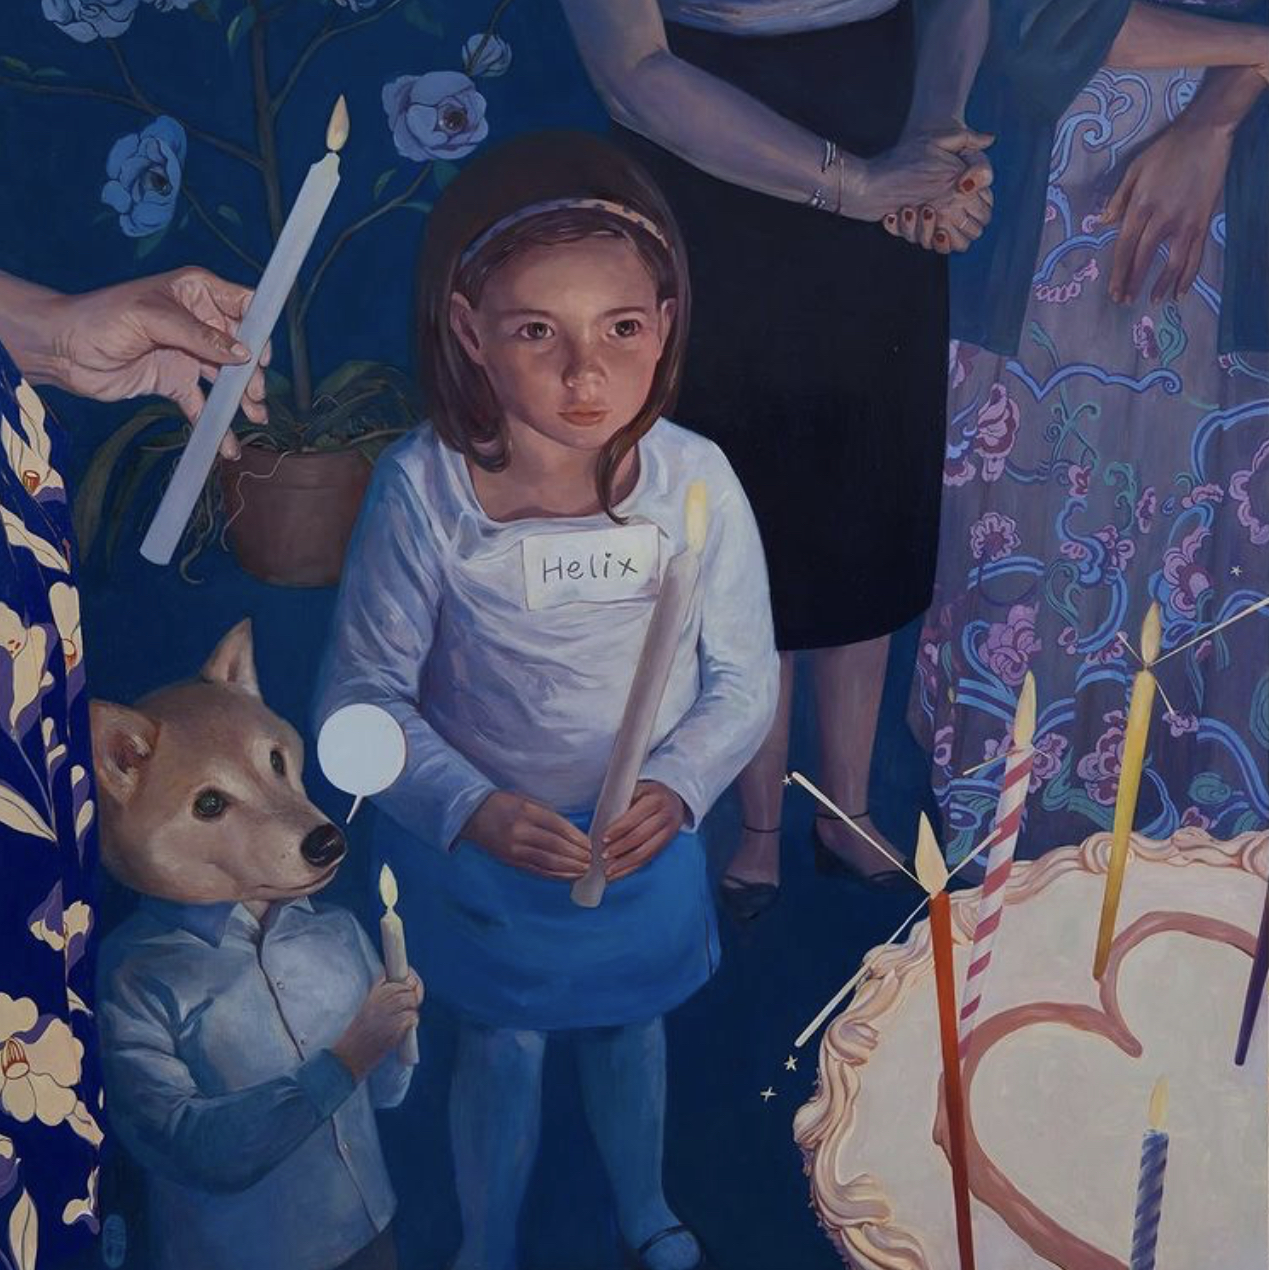 Cake ( may all your wishes come true) by Helice wen